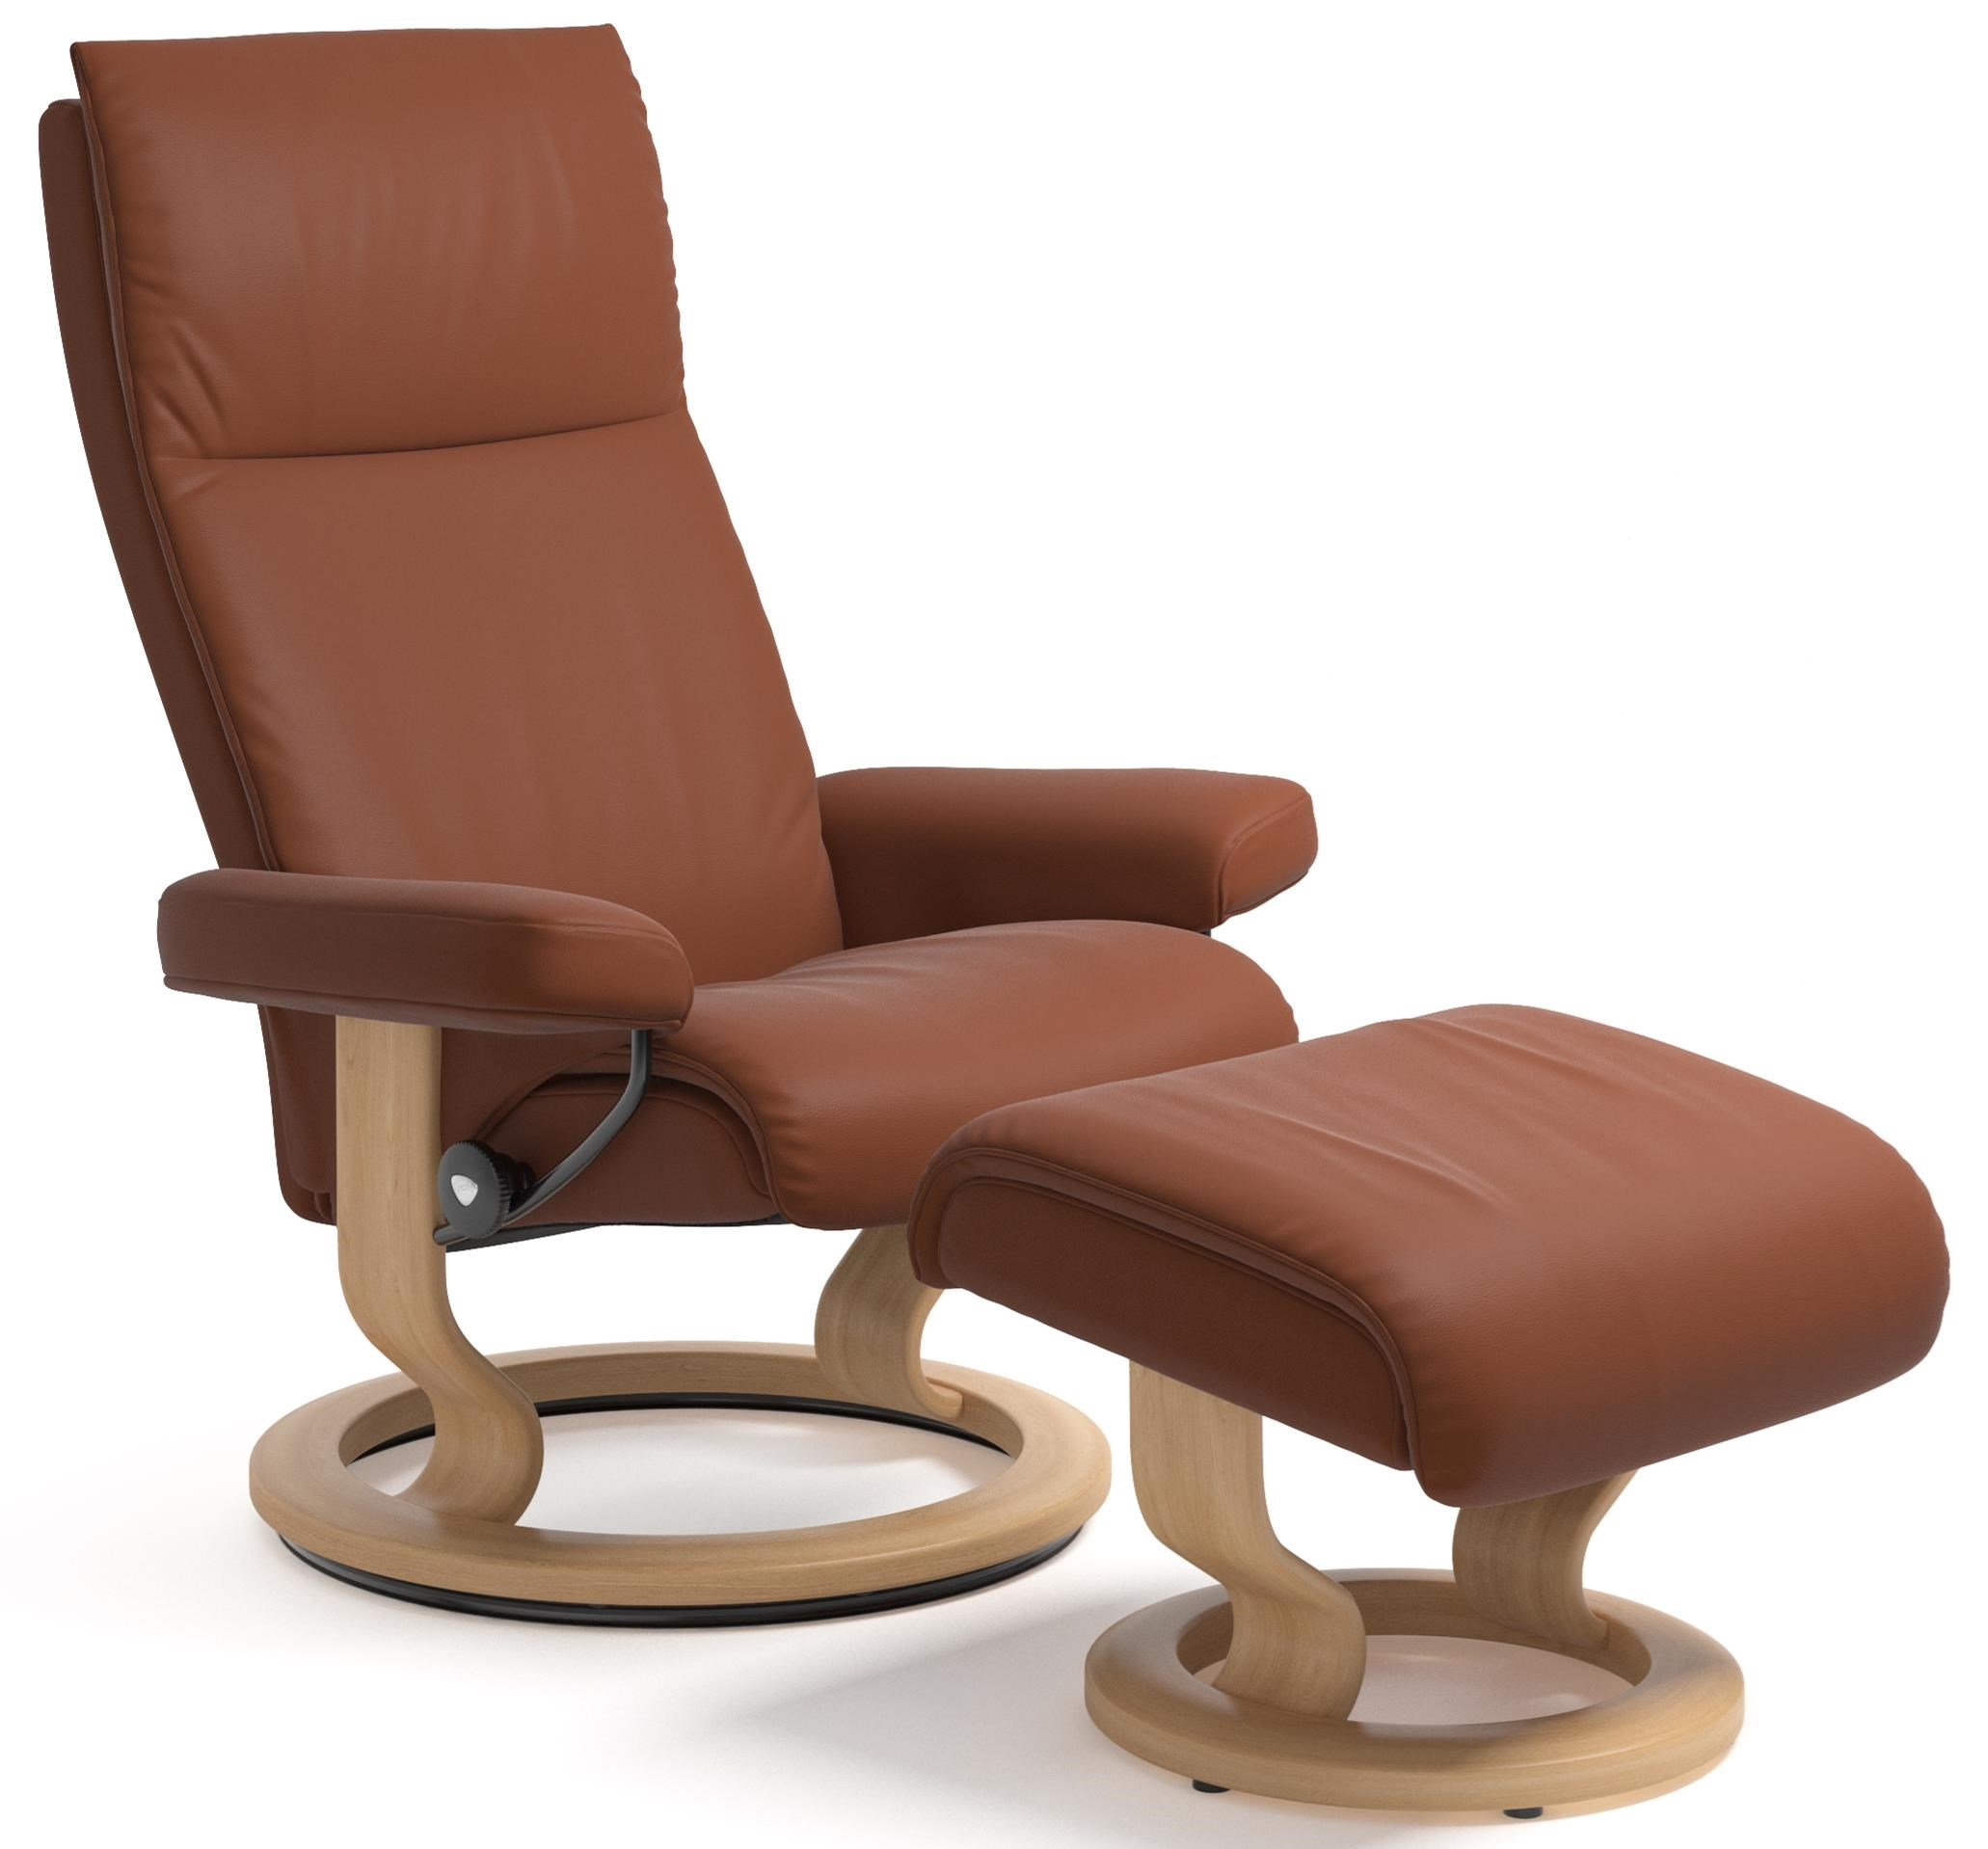 Small Chair With Ottoman: Stressless Aura Small Reclining Chair And Ottoman With